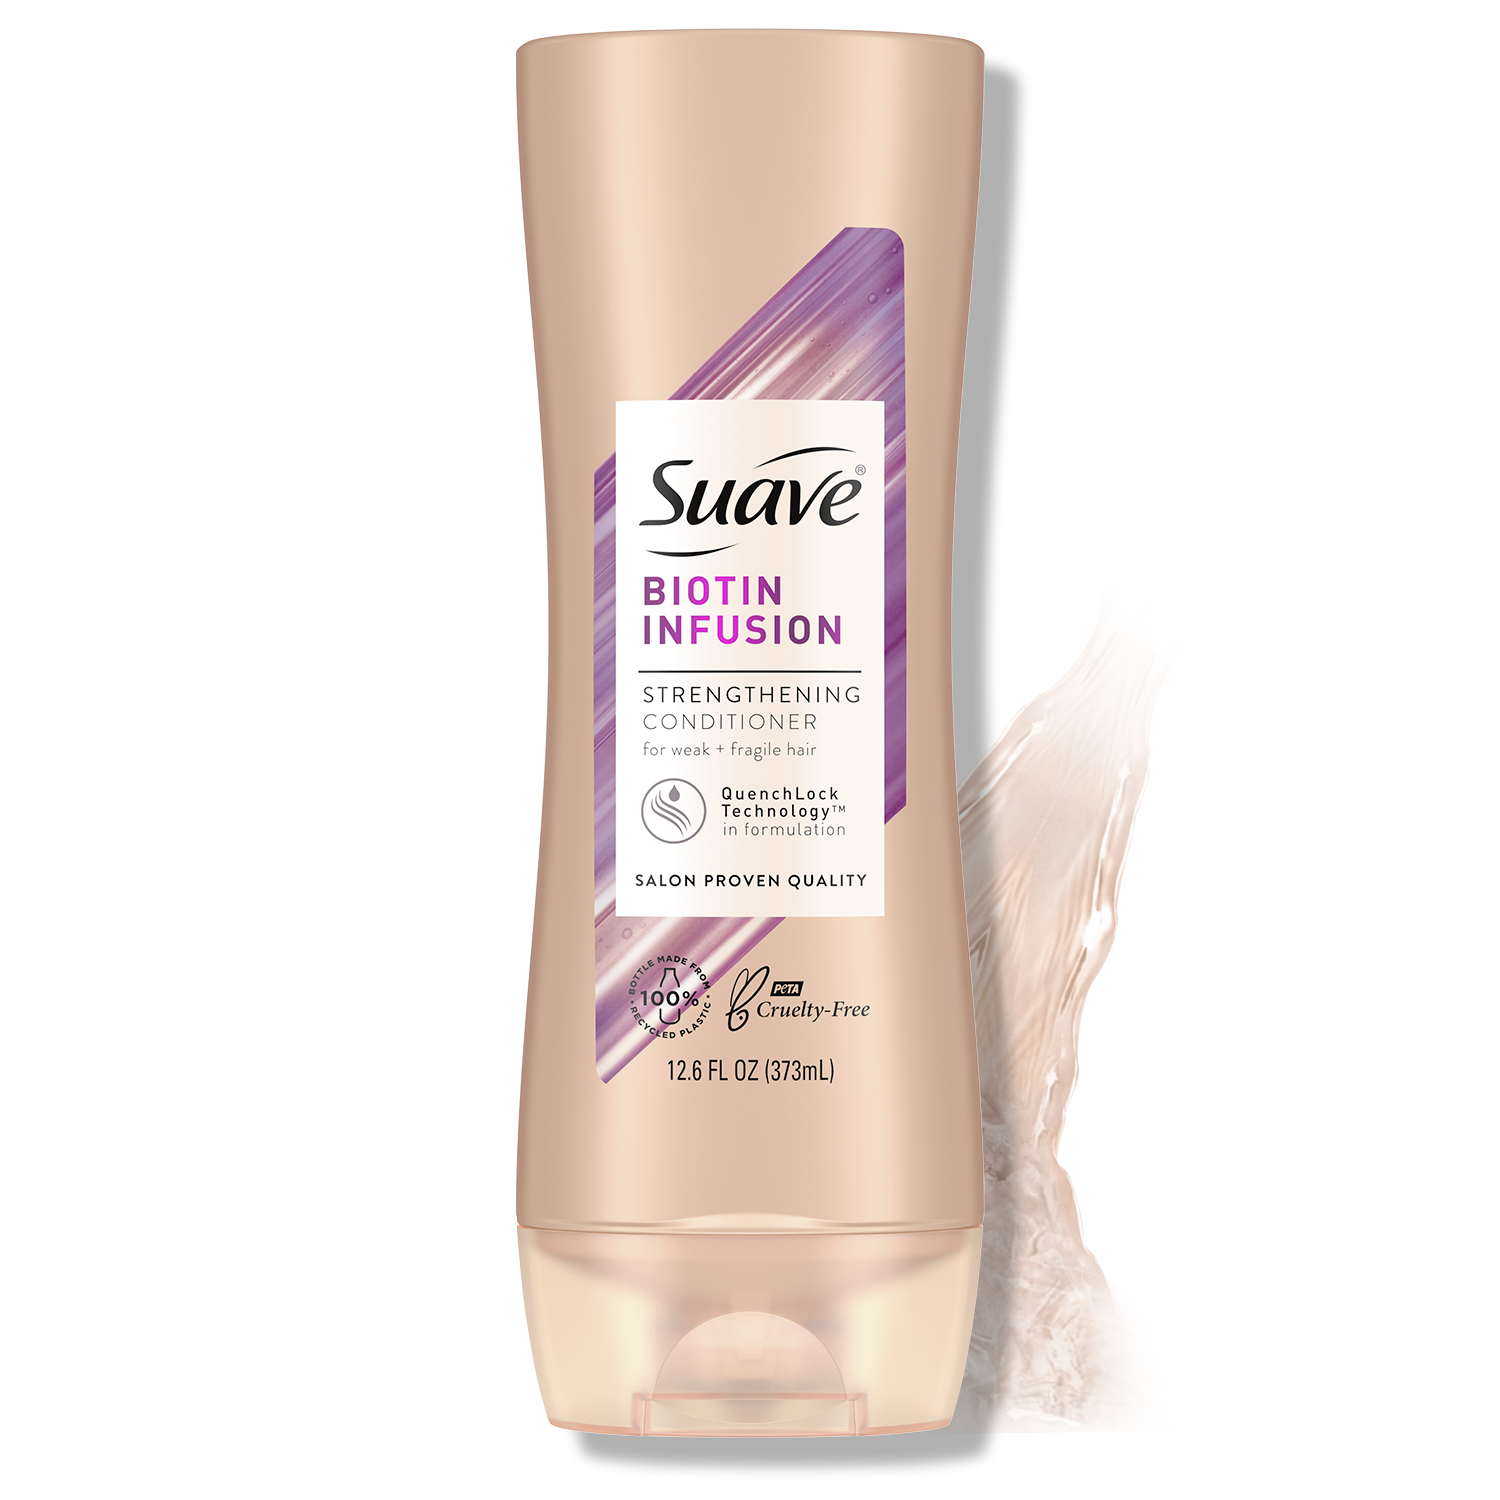 Suave Biotin infusion strengthening conditioner 12.6oz-FL